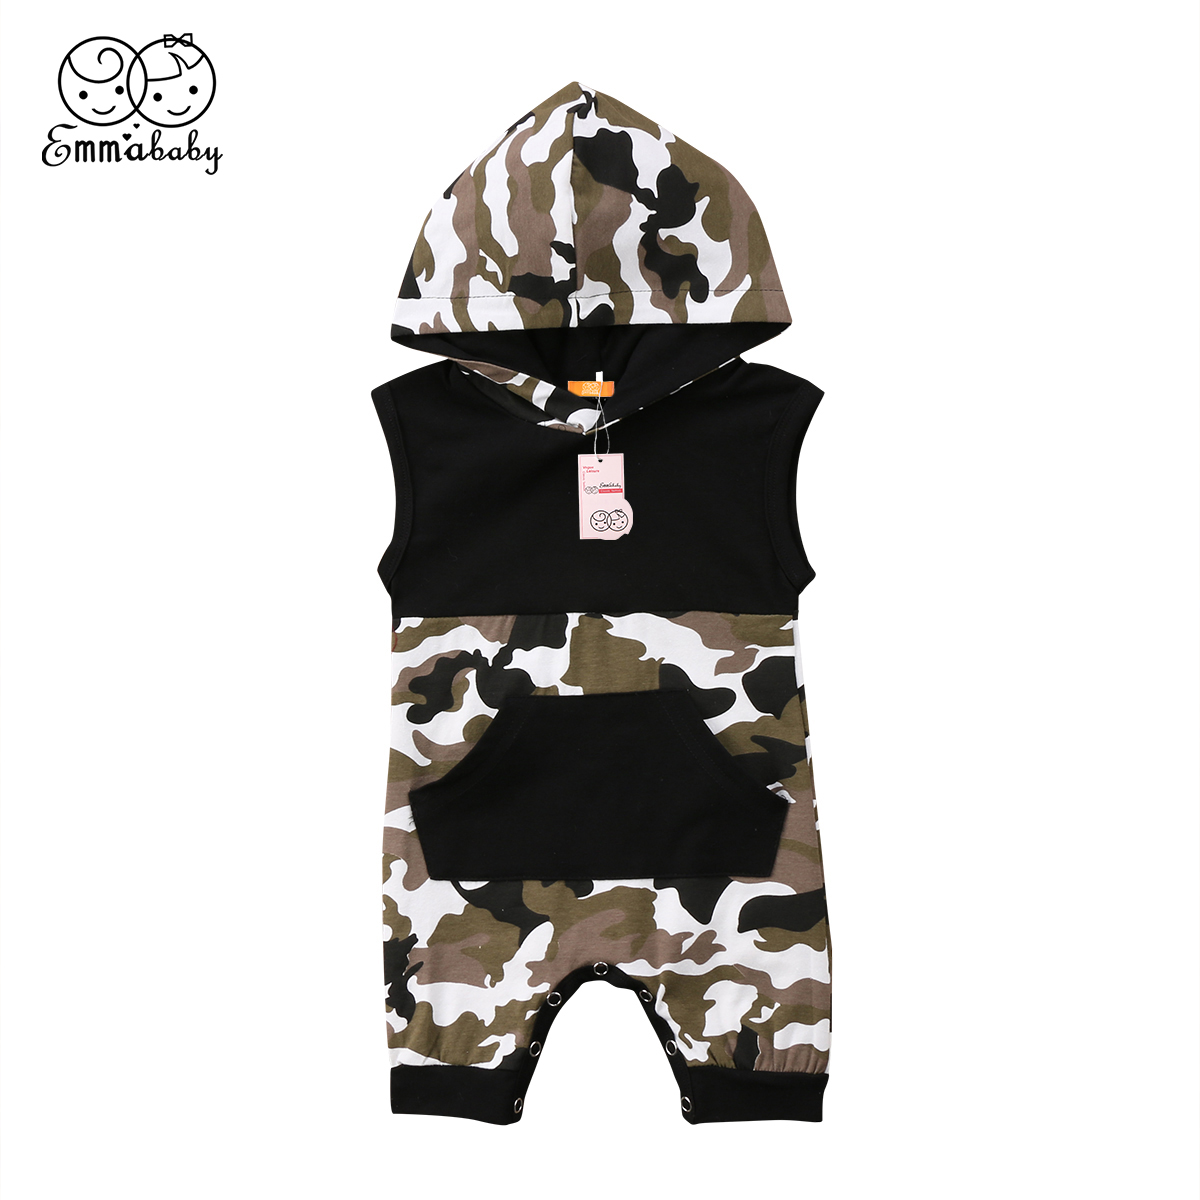 2018 new summer casual Baby Boys Girl Infant Camouflage printed sleeveless hooded short Romper Jumpsuit Hooded Clothes Outfits